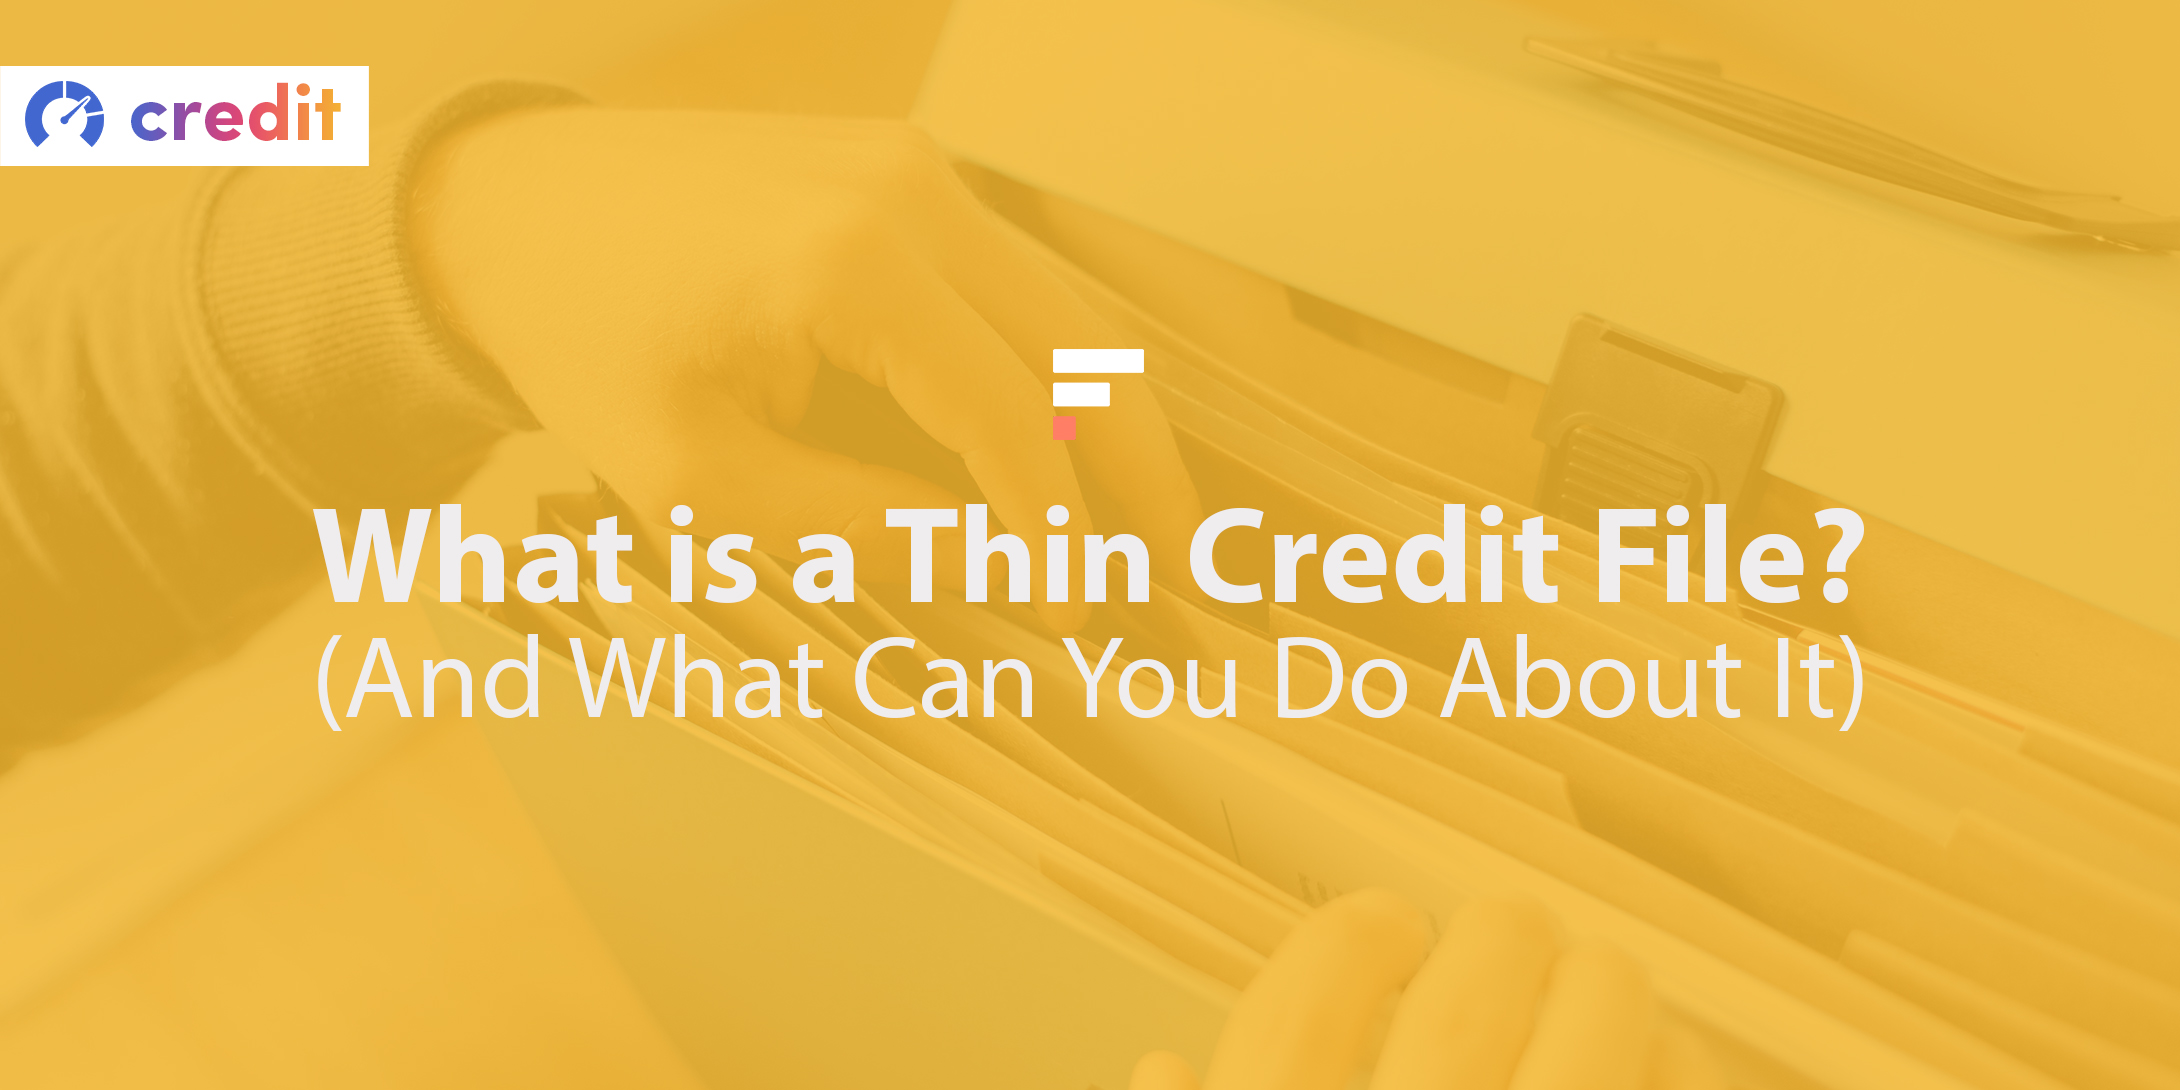 What is a thin credit file